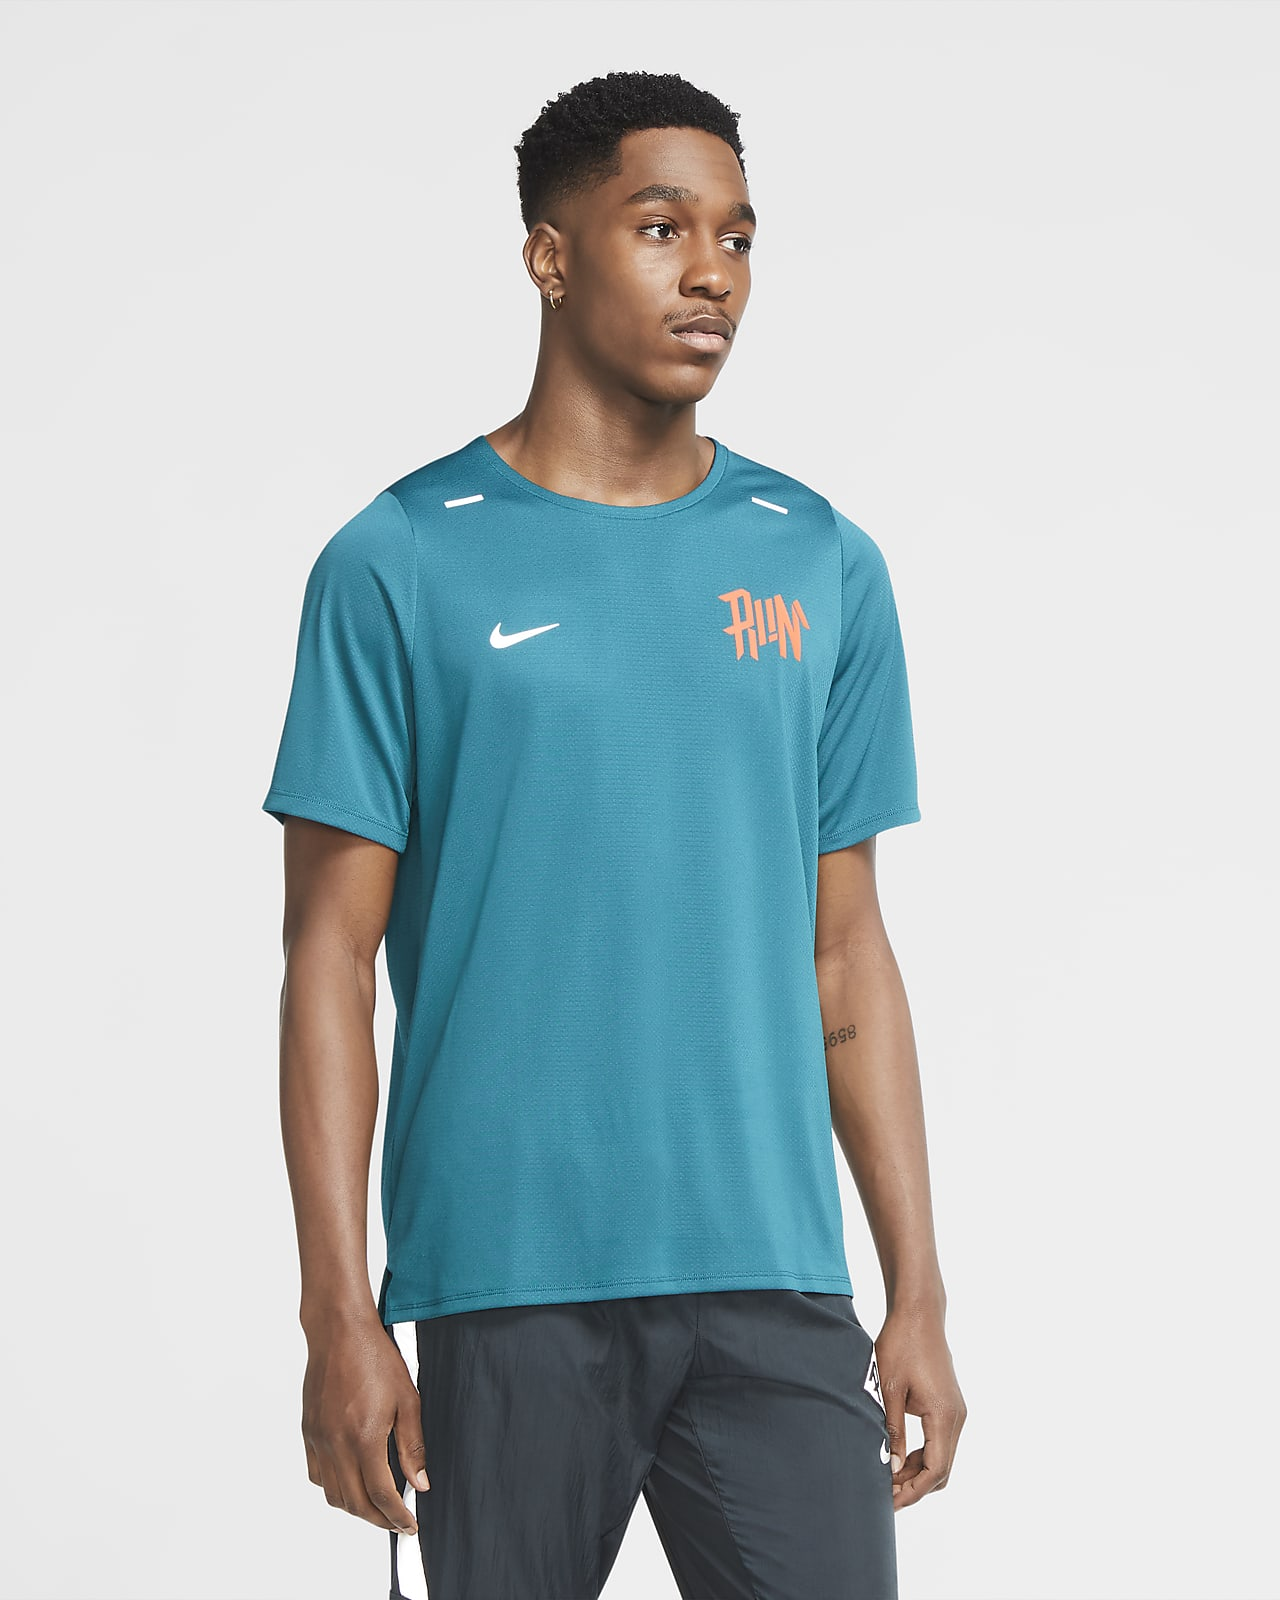 Nike Dri-FIT Rise 365 Wild Run Men's Running Top